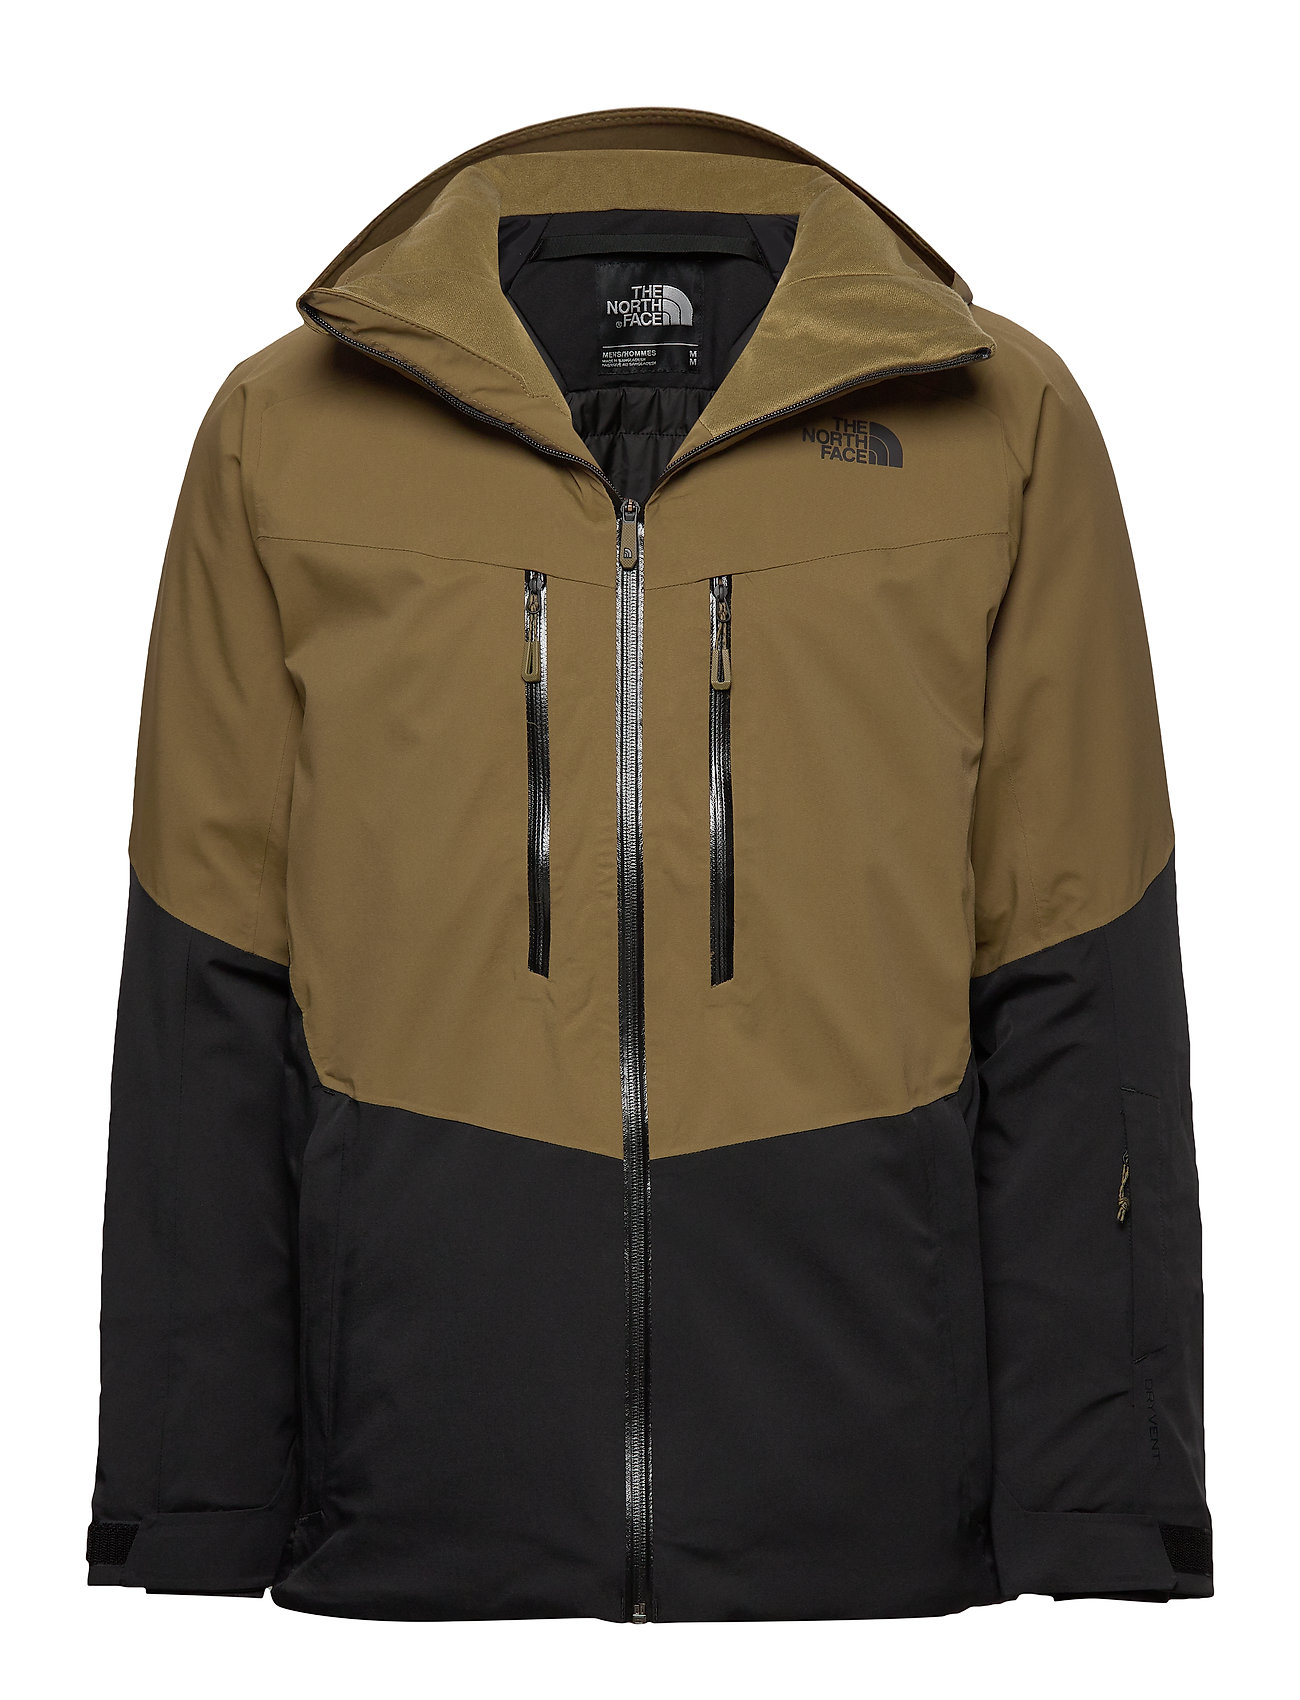 The North Face M CHAKAL JKT - OLIVE/BLACK